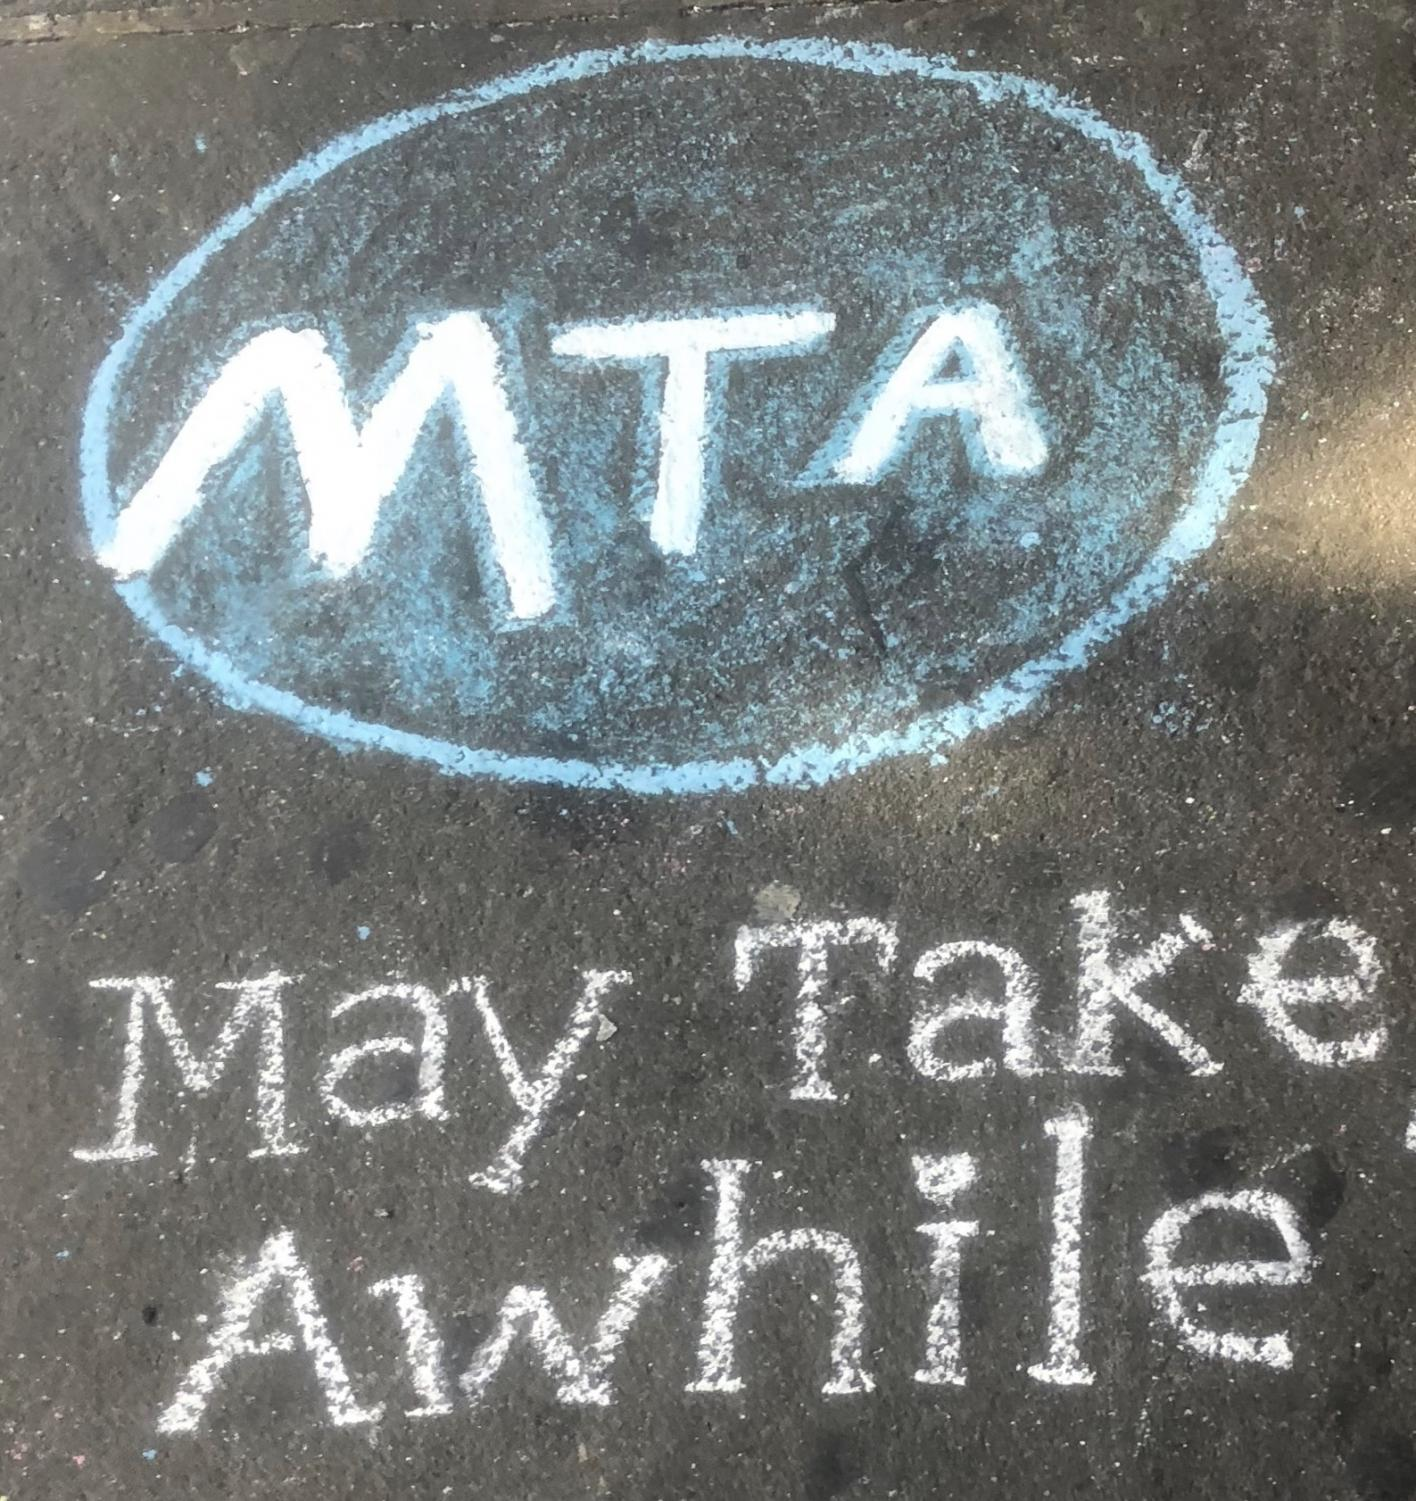 This may be a chalk illustration, but the disrepair of the New York City subway system is not child's play. (COURTESY OF ZAYDA BLEECKER-ADAMS)